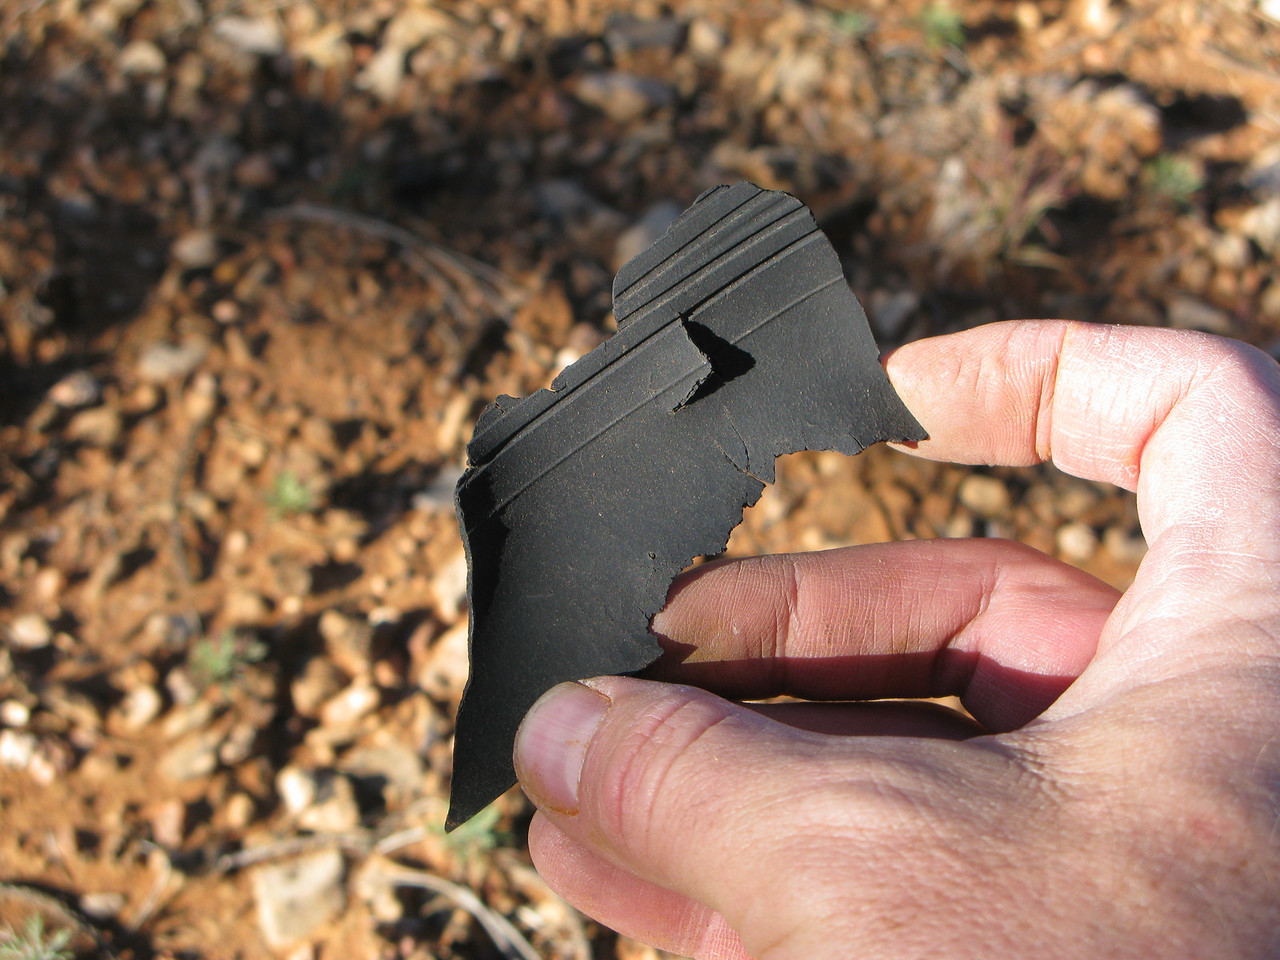 This fragment of rubber was once part of the propeller De-ice system. The groves in the rubber helped direct or guide alcohol De-ice fluid along a propeller blade and remove ice. <br /> <br /> Locating fragments such as this helps to determine what systems the aircraft was equipped with.